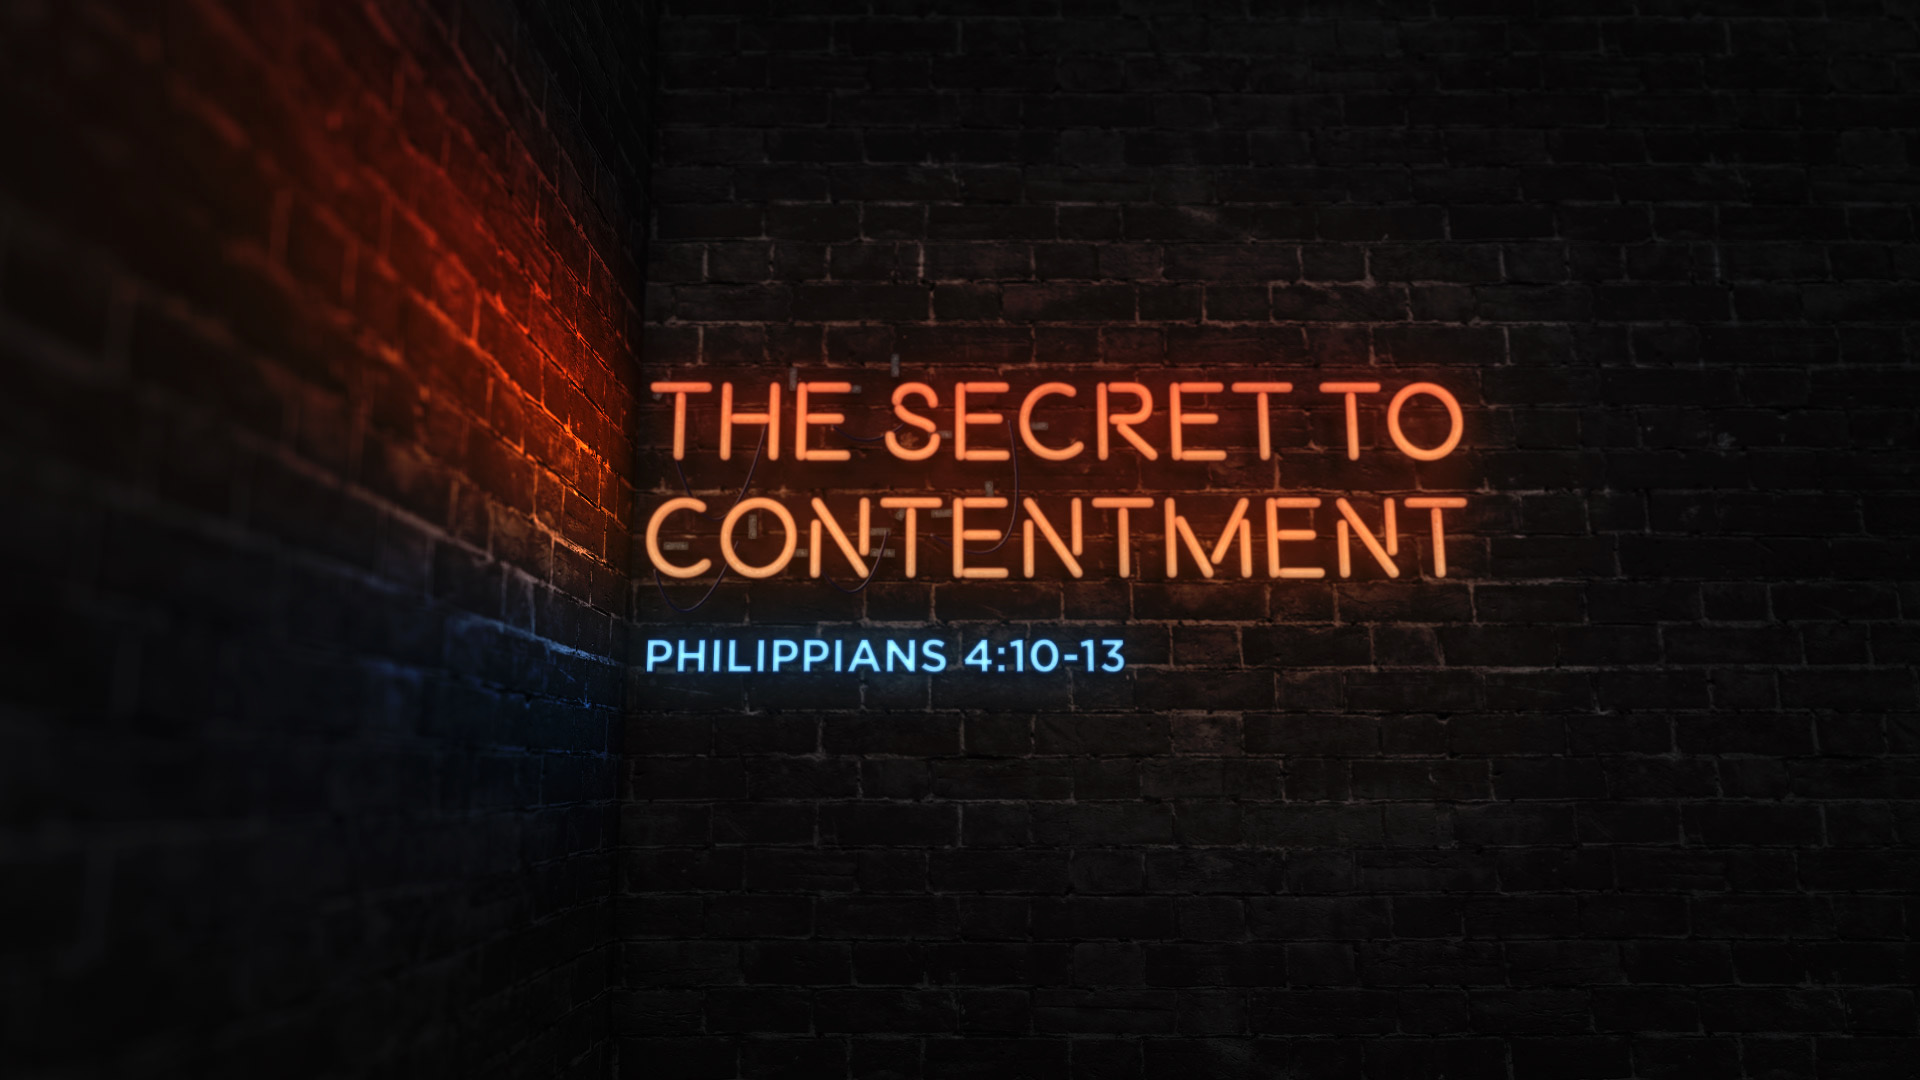 The Secret to Contentment